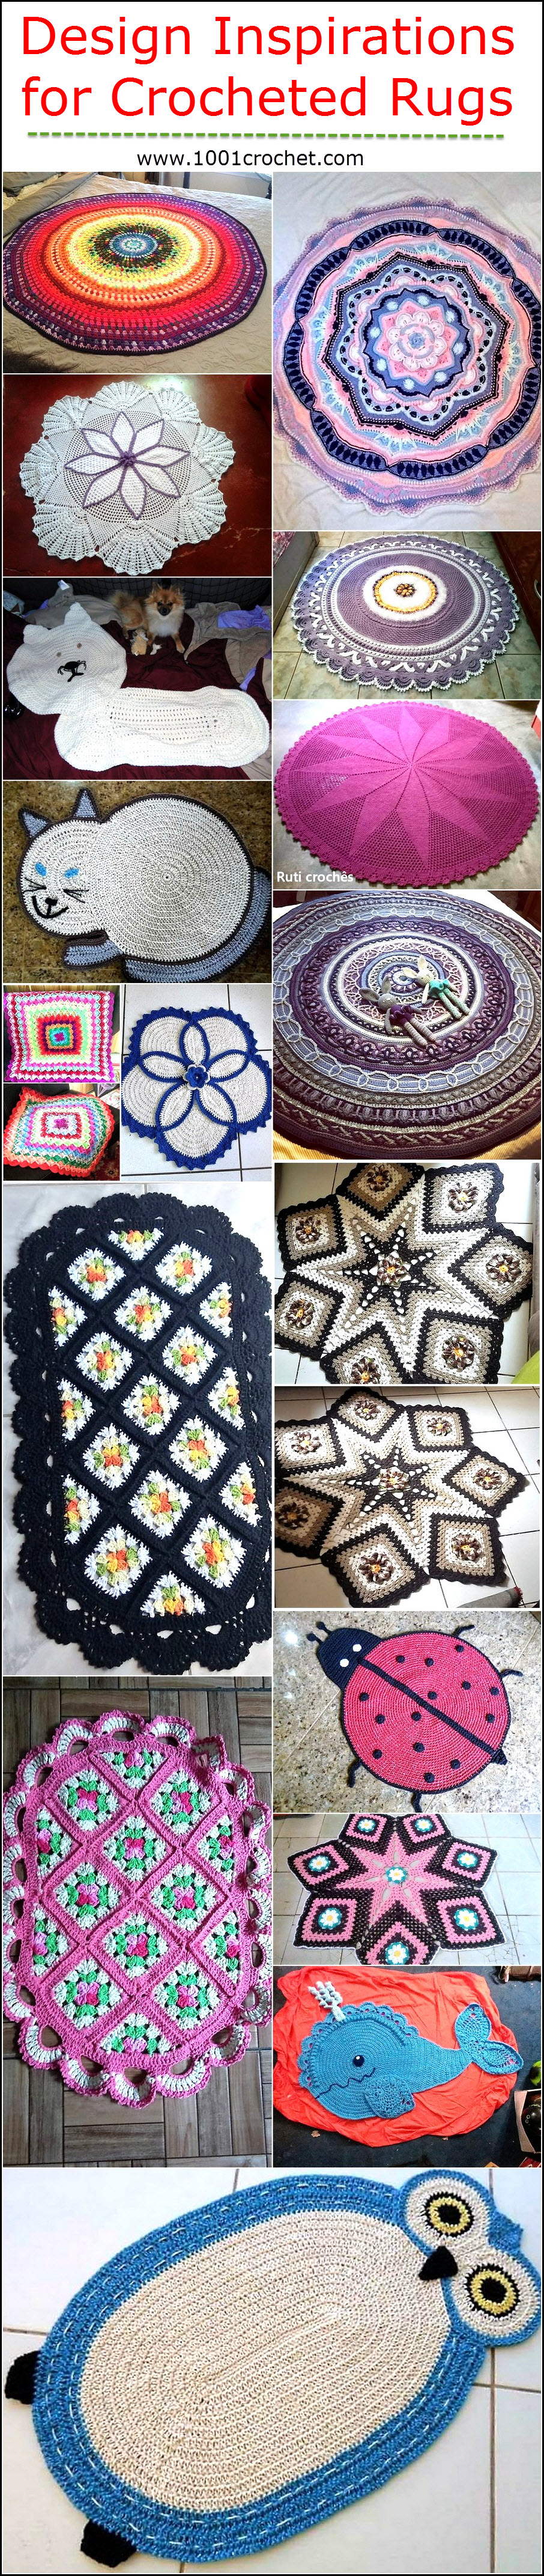 design-inspirations-for-crocheted-rugs